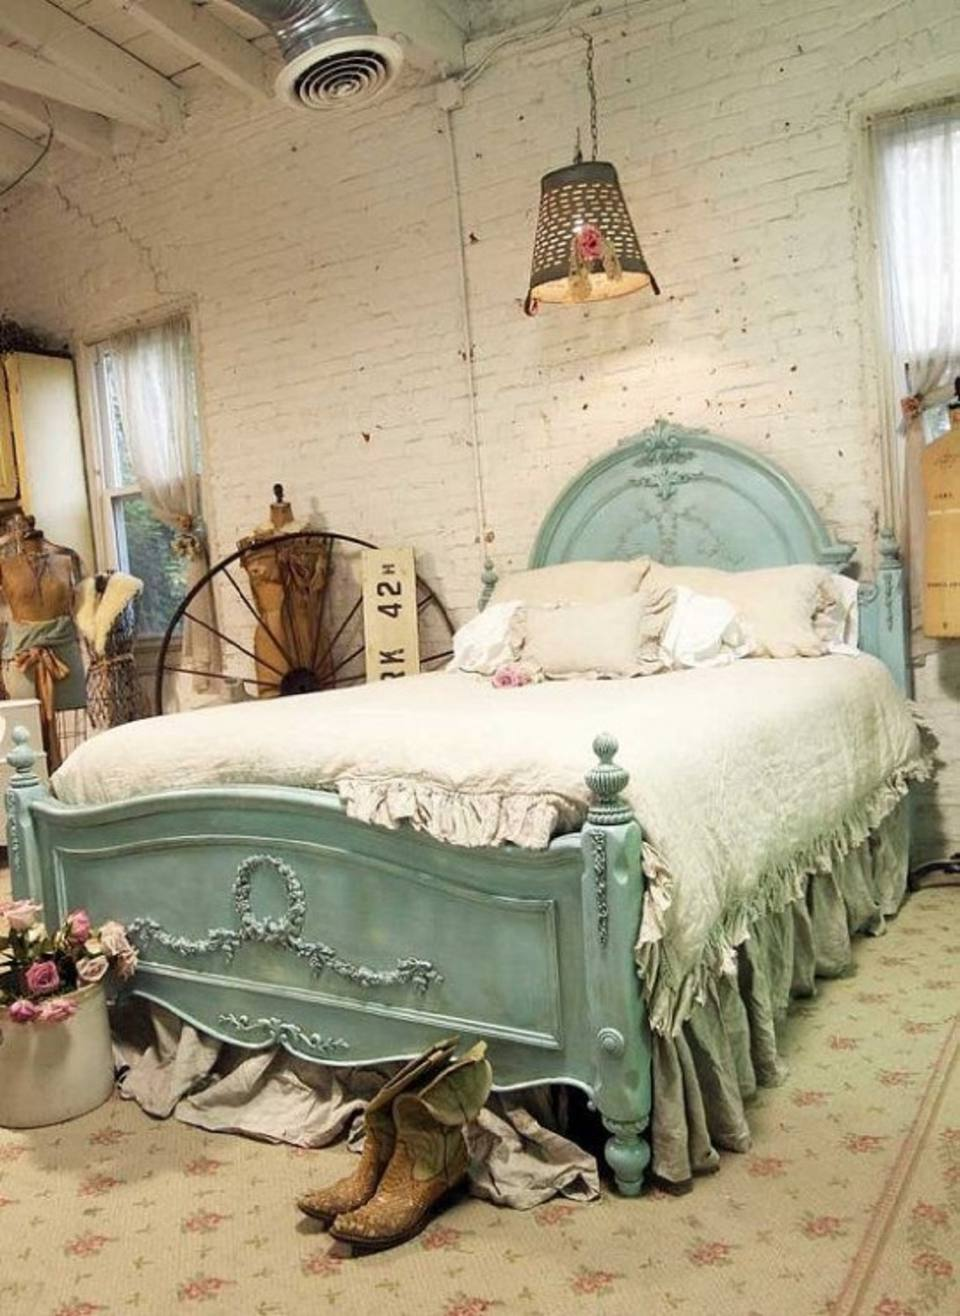 style furniture taking ideas decoration decorating bedroom into vintage bed styled